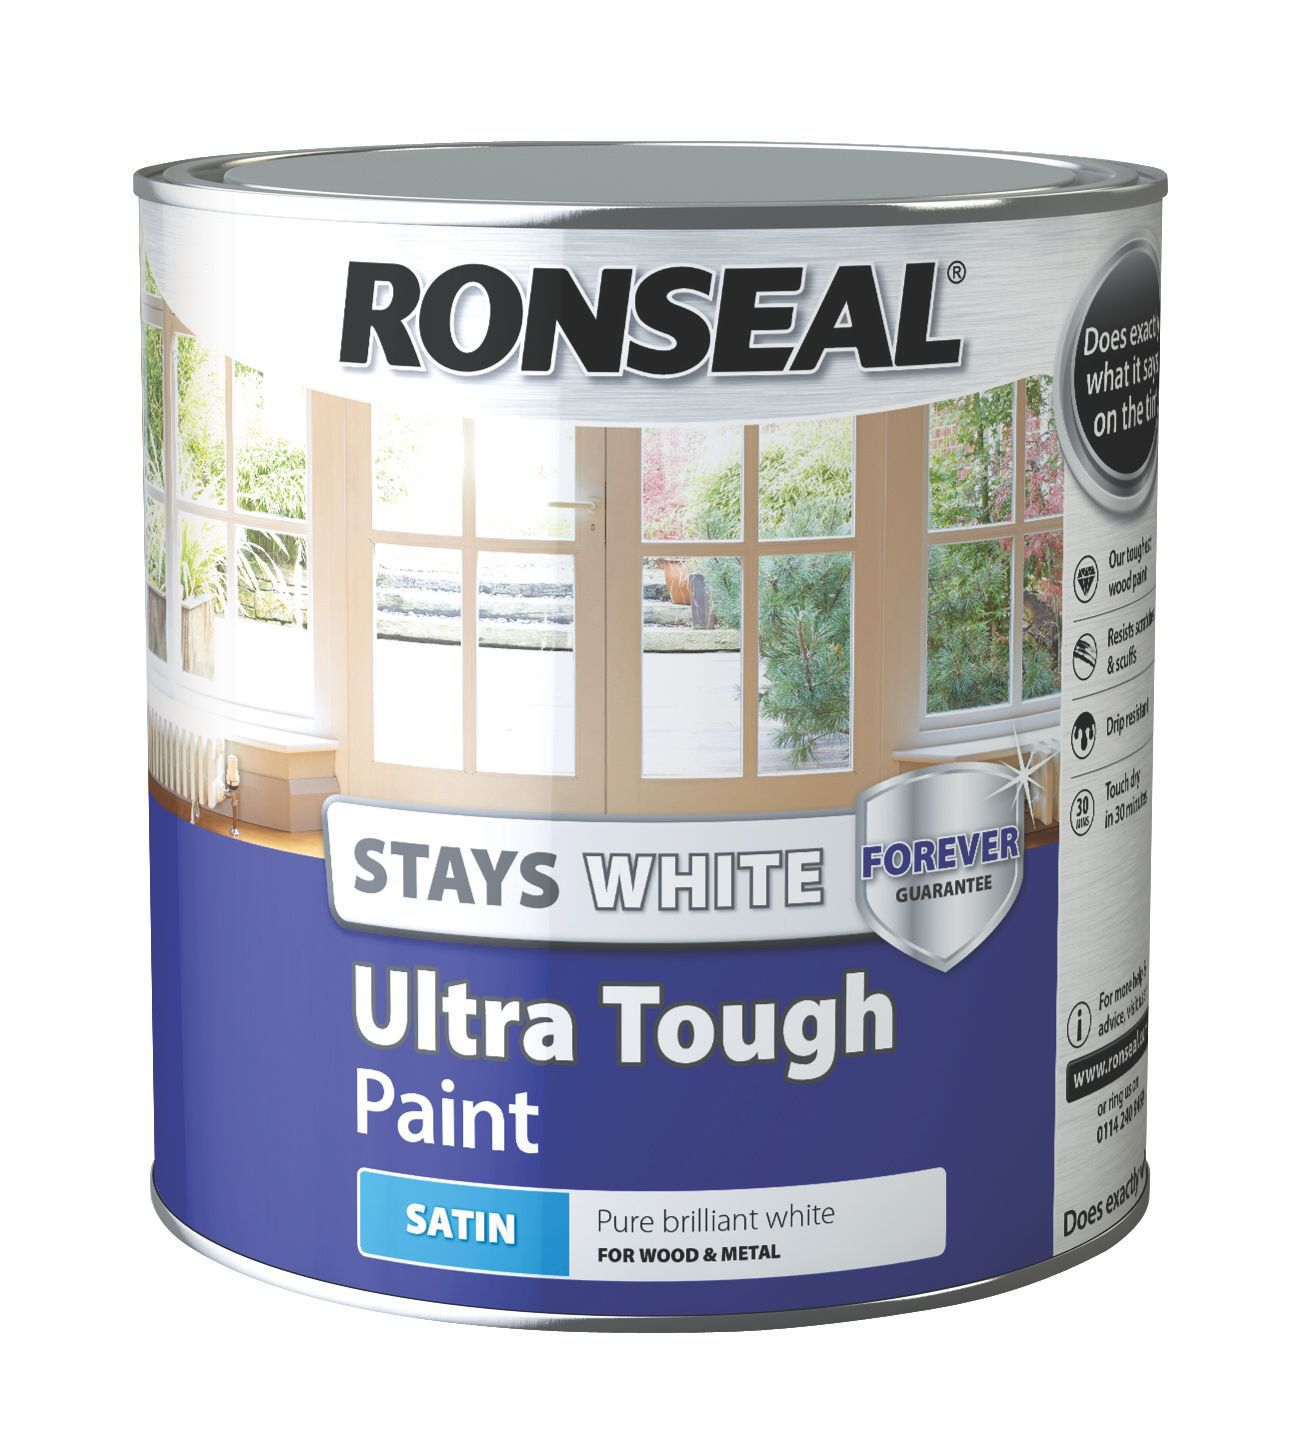 ronseal pure brilliant white satin wood metal paint. Black Bedroom Furniture Sets. Home Design Ideas